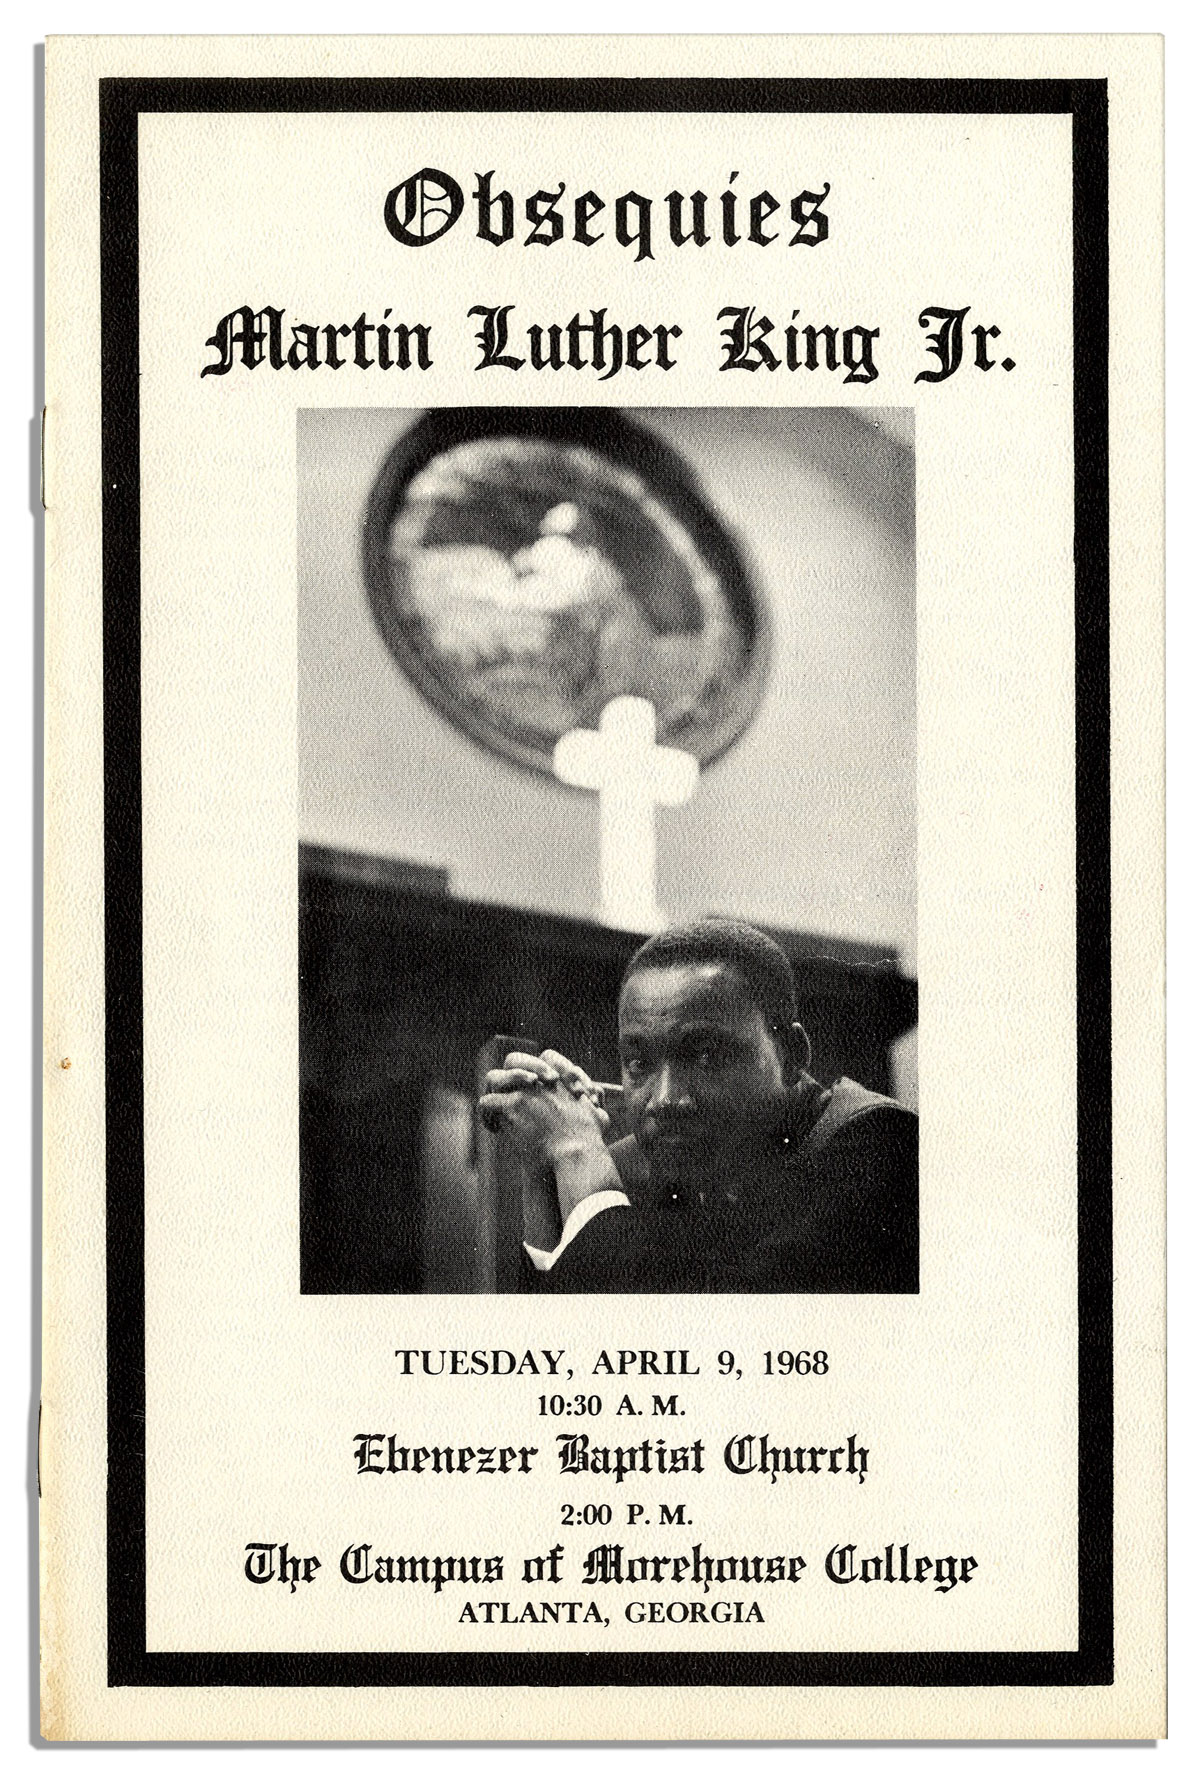 Obsequies Program From The Funeral Of Martin Luther King Substantial Booklet Consolidates His Most